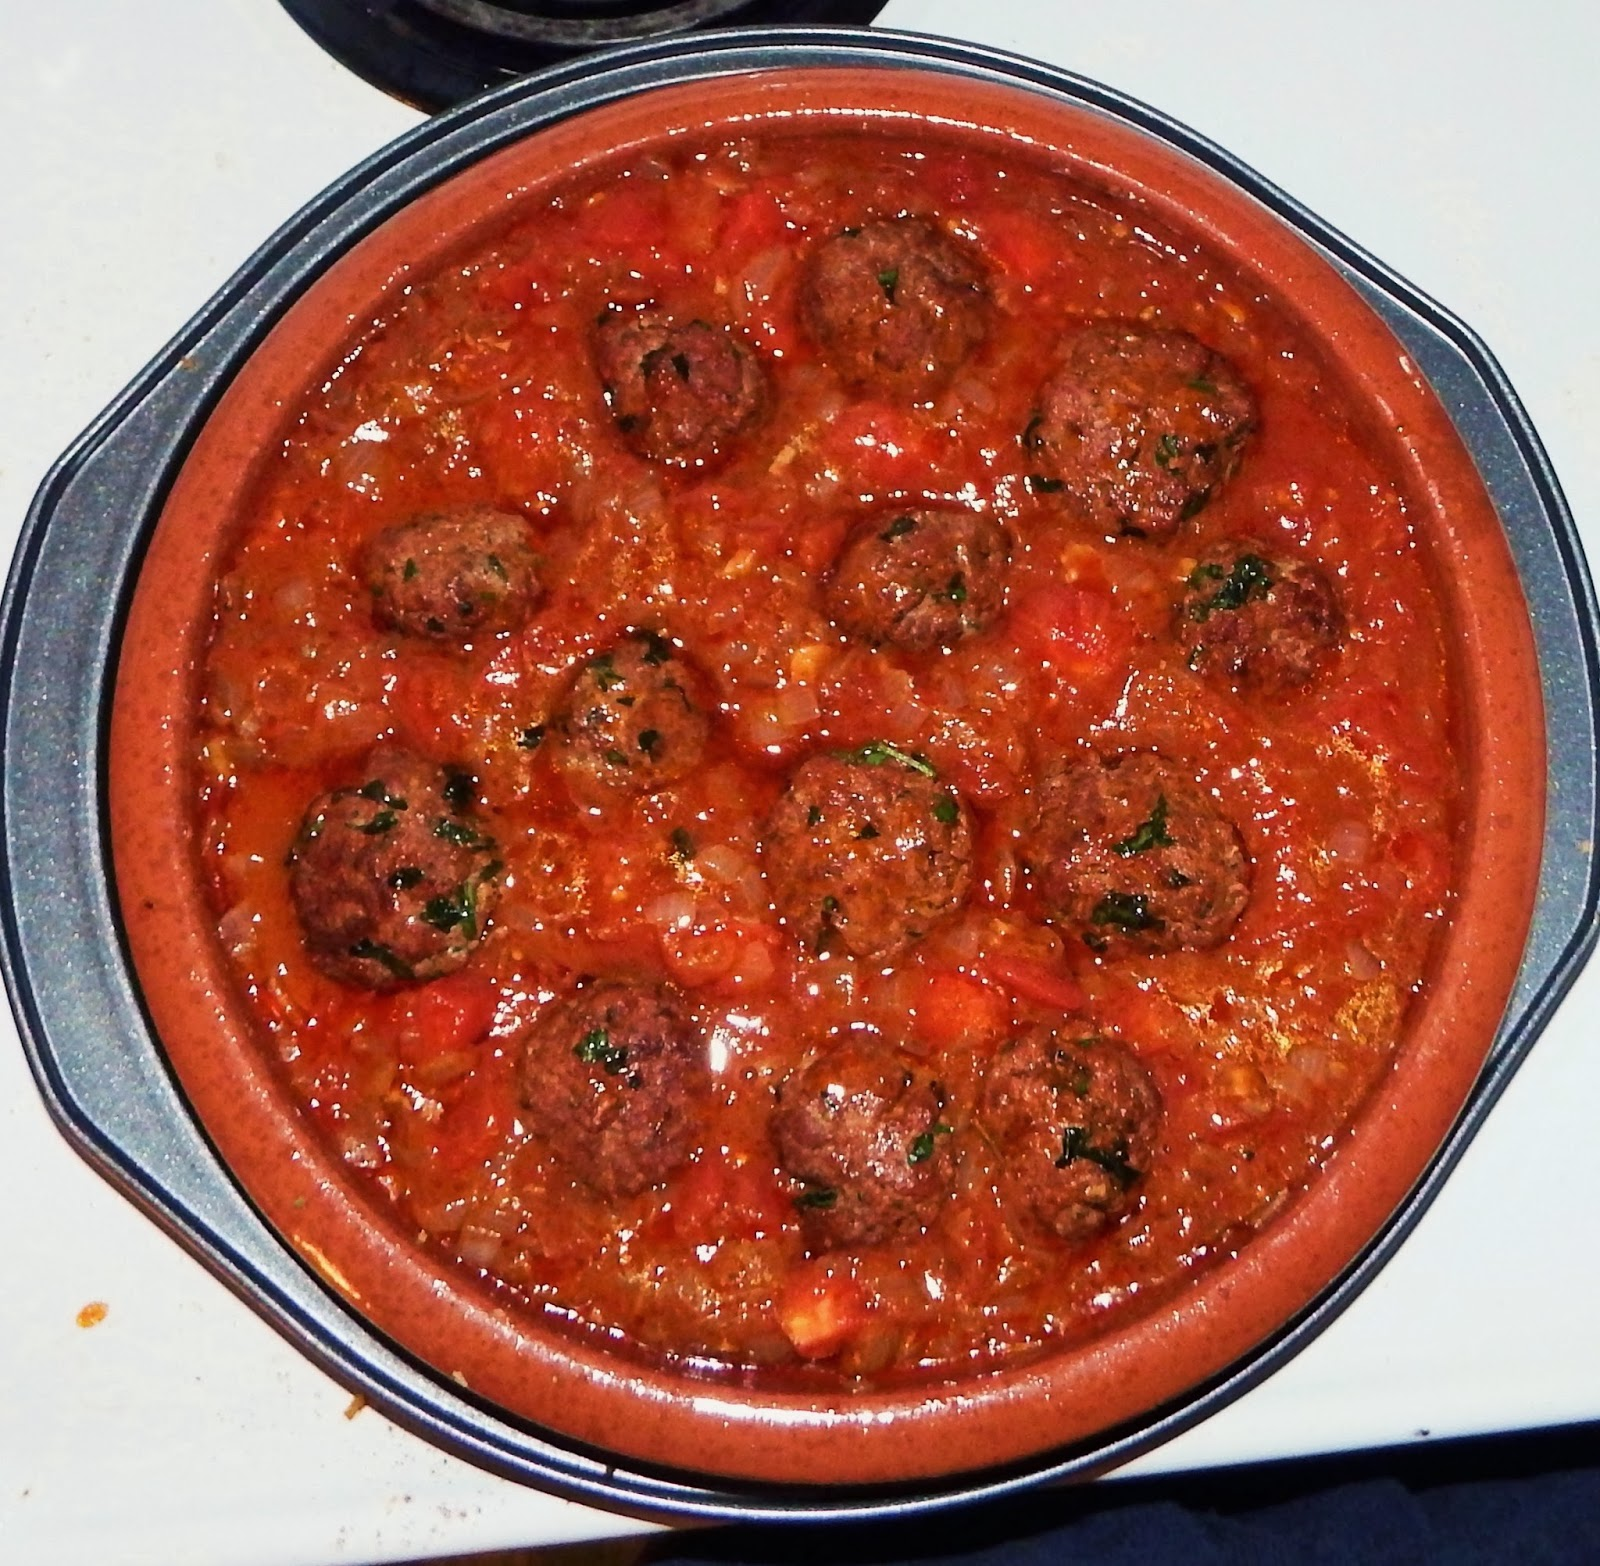 ... Merguez meatballs and any flavourful liquid that has accumulated to